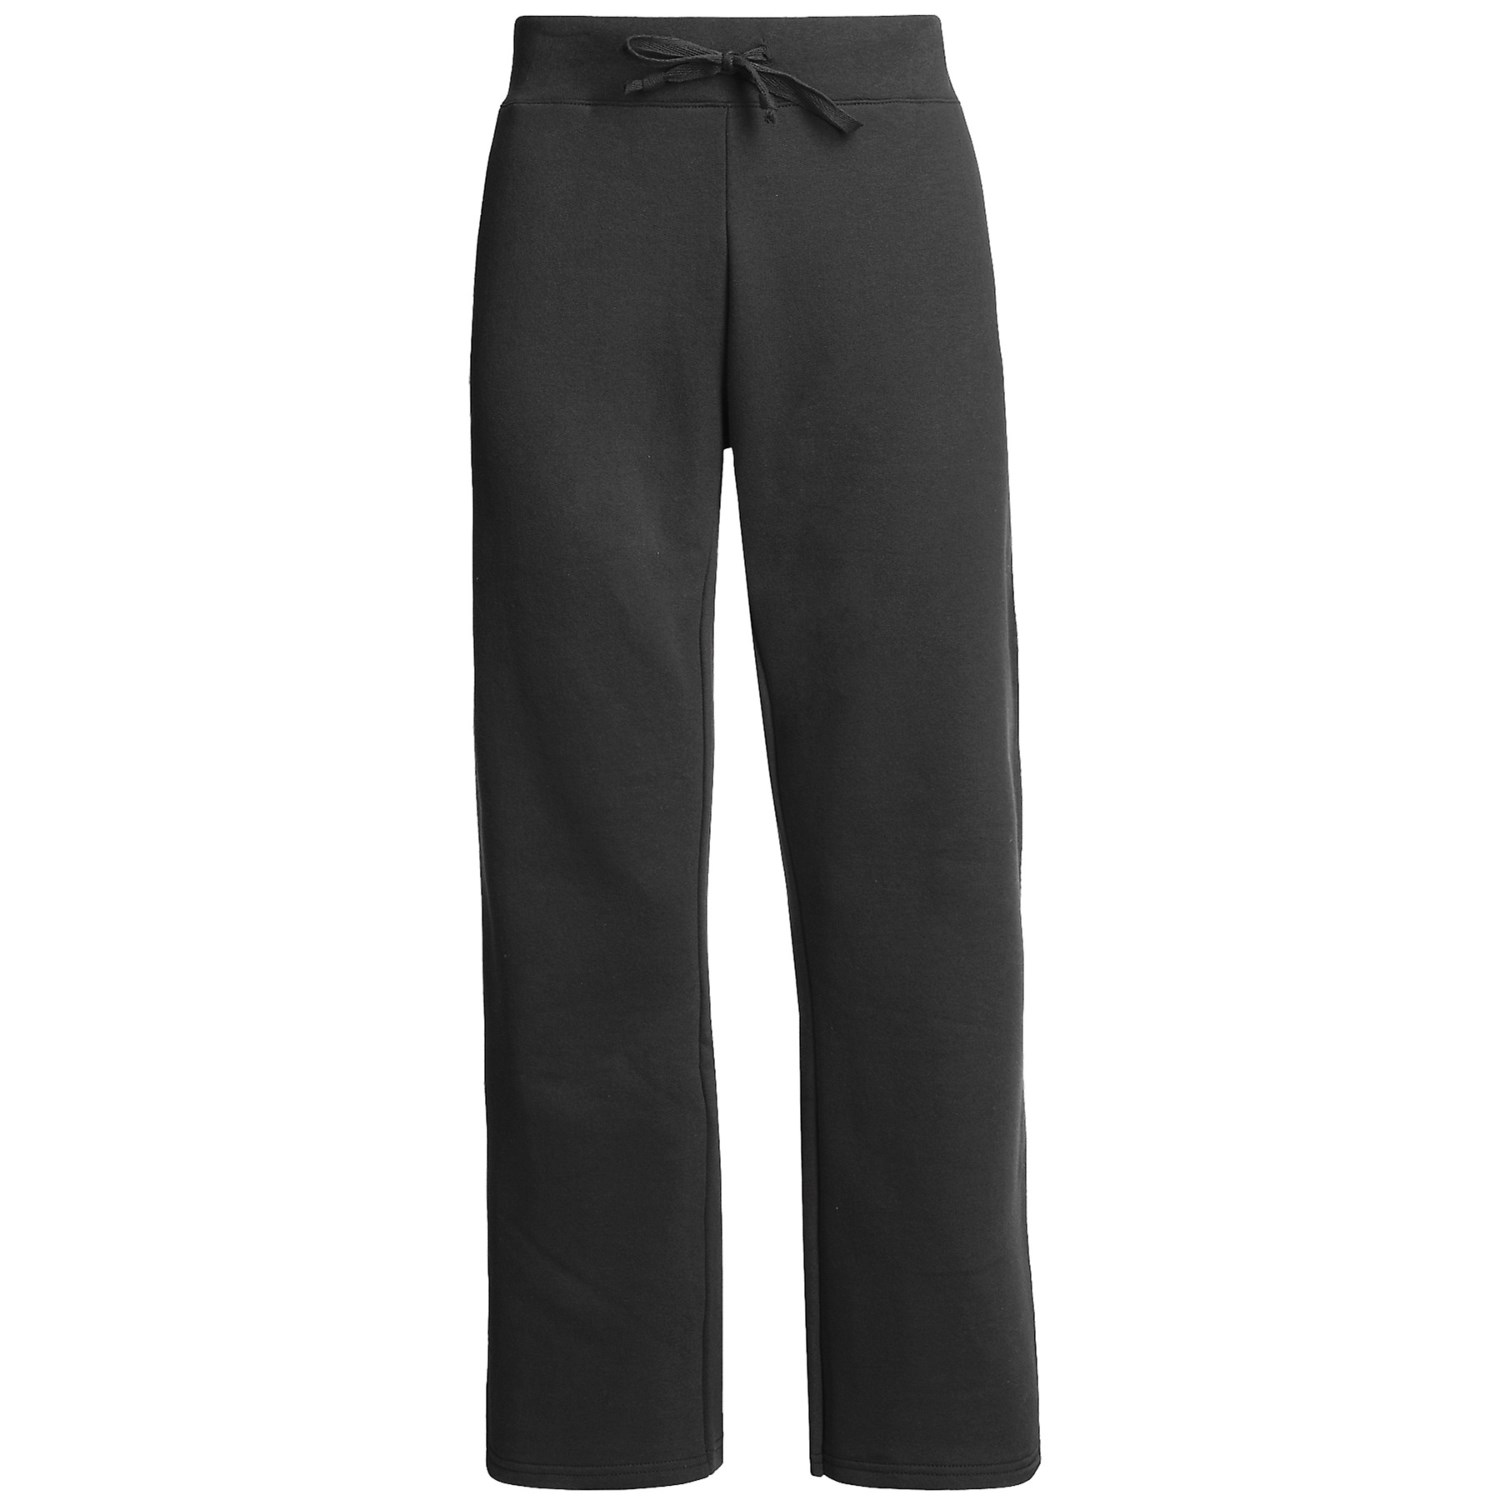 Shop girls' sweatpants & joggers from DICK'S Sporting Goods today. If you find a lower price on girls' sweatpants & joggers somewhere else, we'll match it with our Best Price Guarantee! Check out customer reviews on girls' sweatpants & joggers and save big on a variety of products. Plus, ScoreCard members earn points on every purchase.